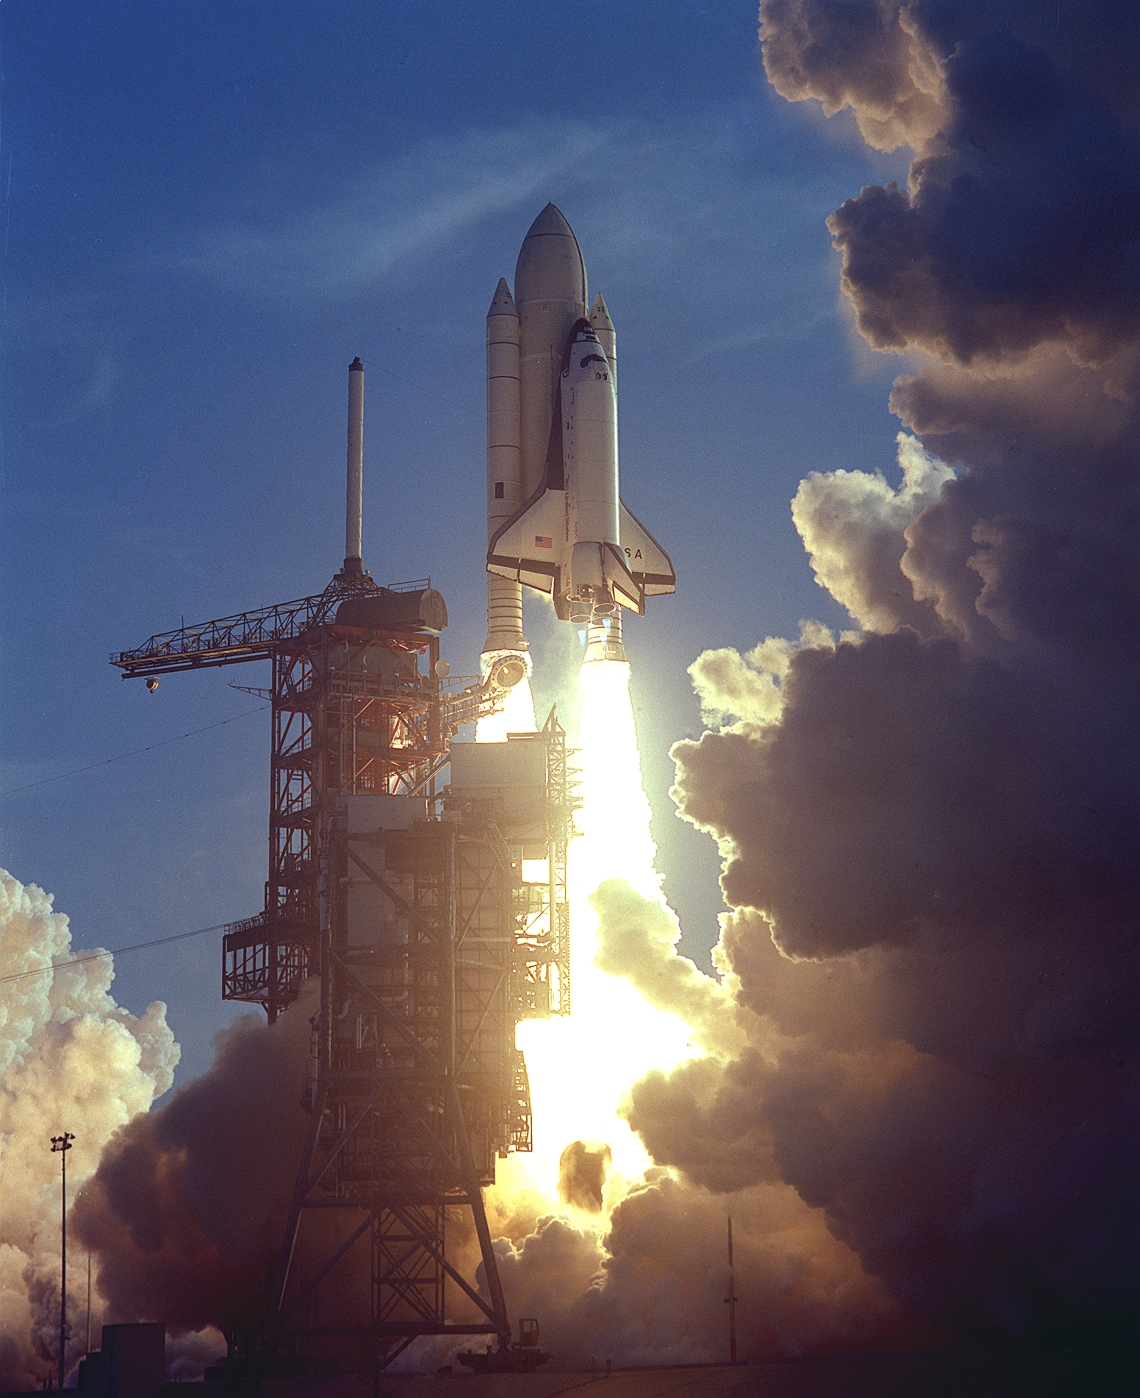 In 1981, Columbia was the first Space Shuttle to go into orbit. It returned to Earth after 54.5 hours having orbited the Earth 36 times. (Photo credit: NASA)